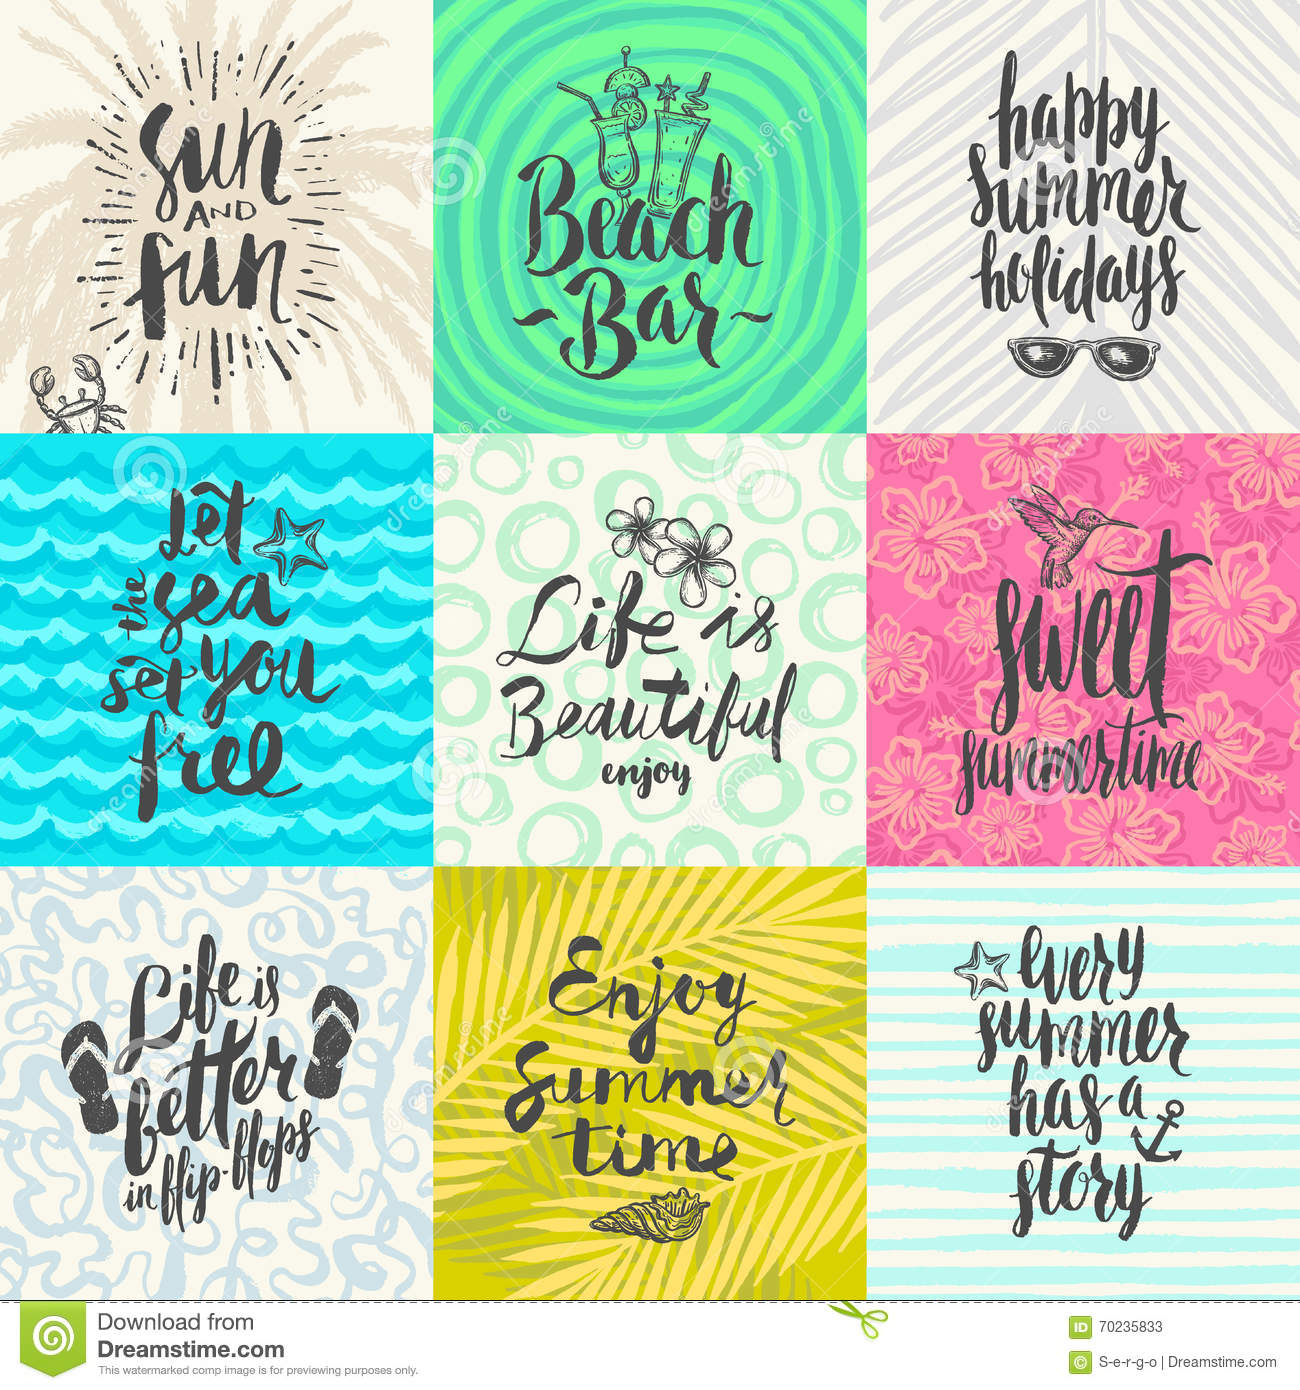 Set of summer holidays and tropical vacation posters or greeting set of summer holidays and tropical vacation hand drawn posters or greeting card with handwritten calligraphy quotes phrase and words m4hsunfo